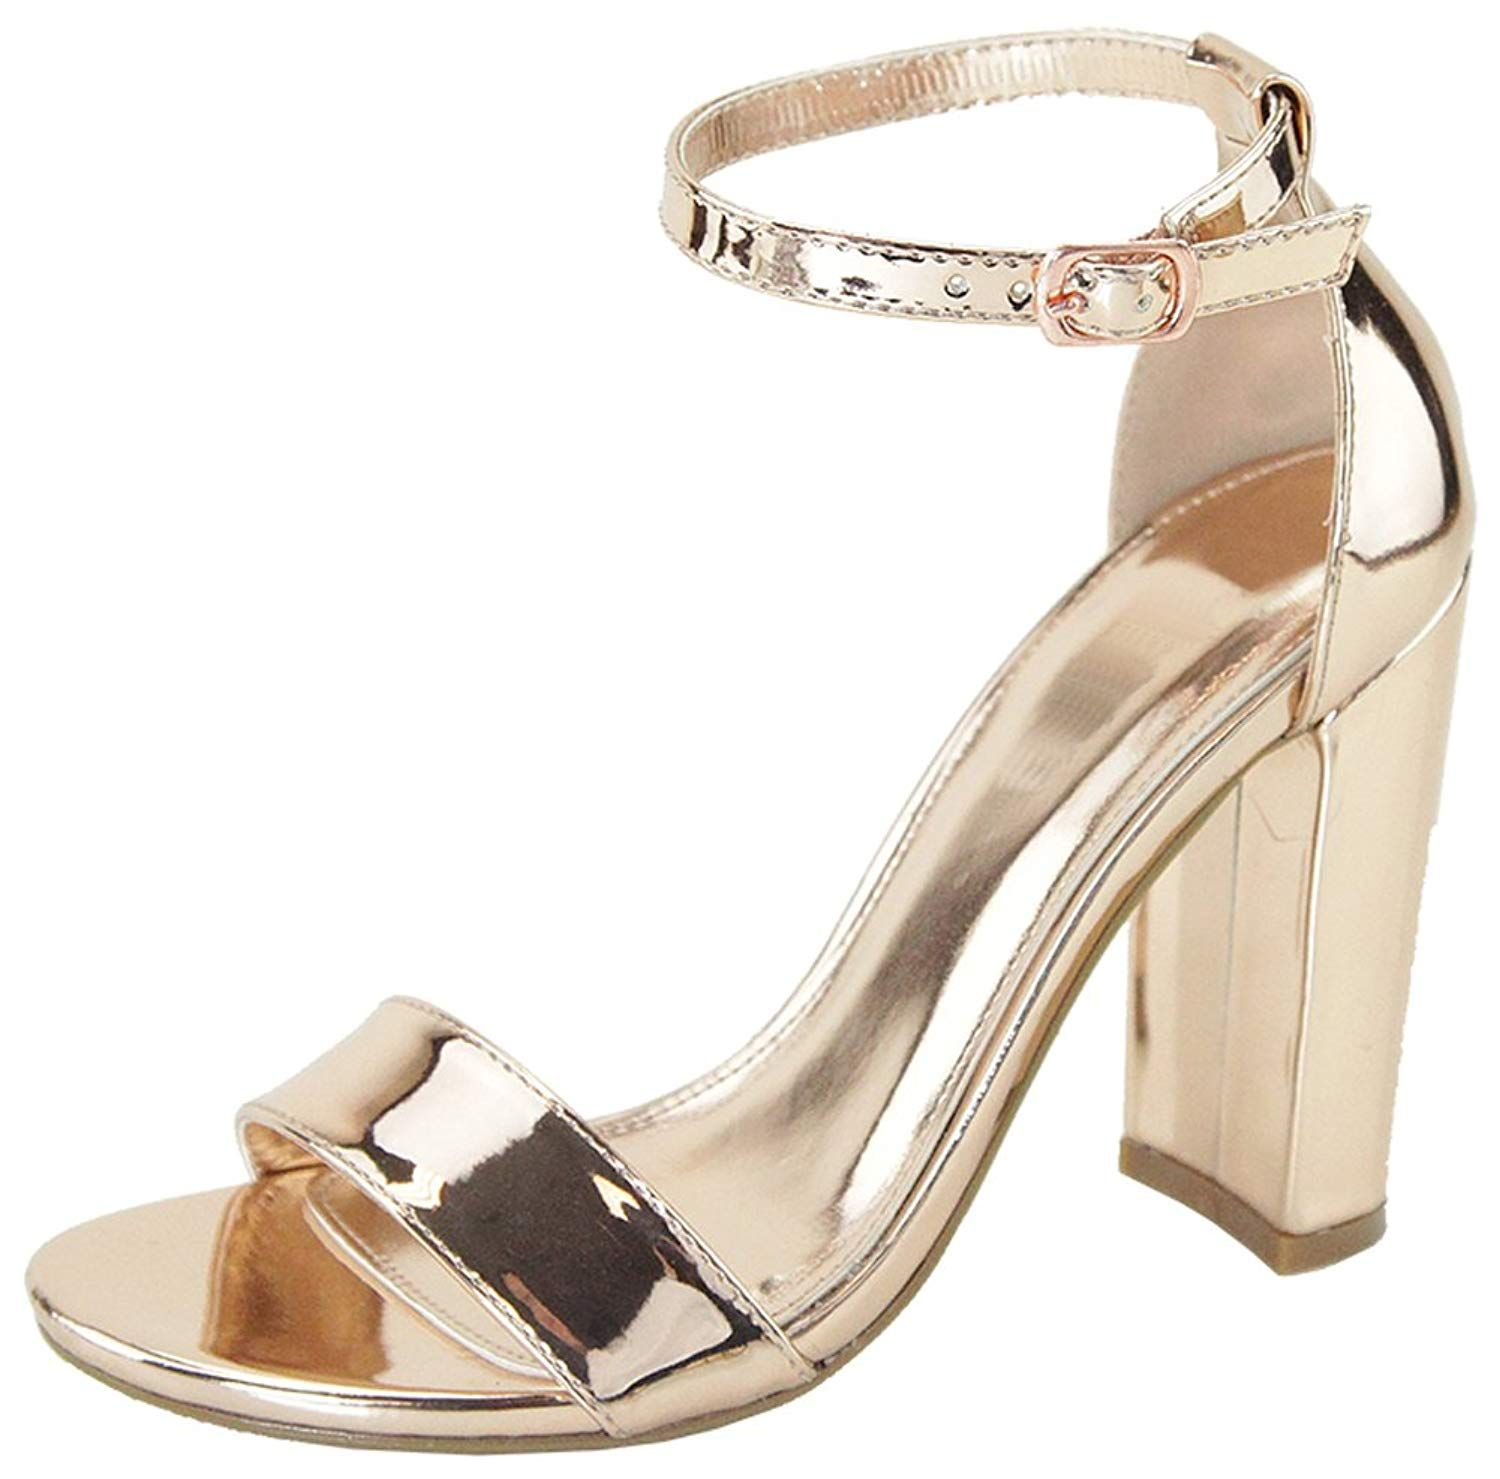 e69887434bc Cambridge Select Women s Single Band Buckle Open Toe Ankle Strap Chunky  Wrapped Block High Heel Sandal